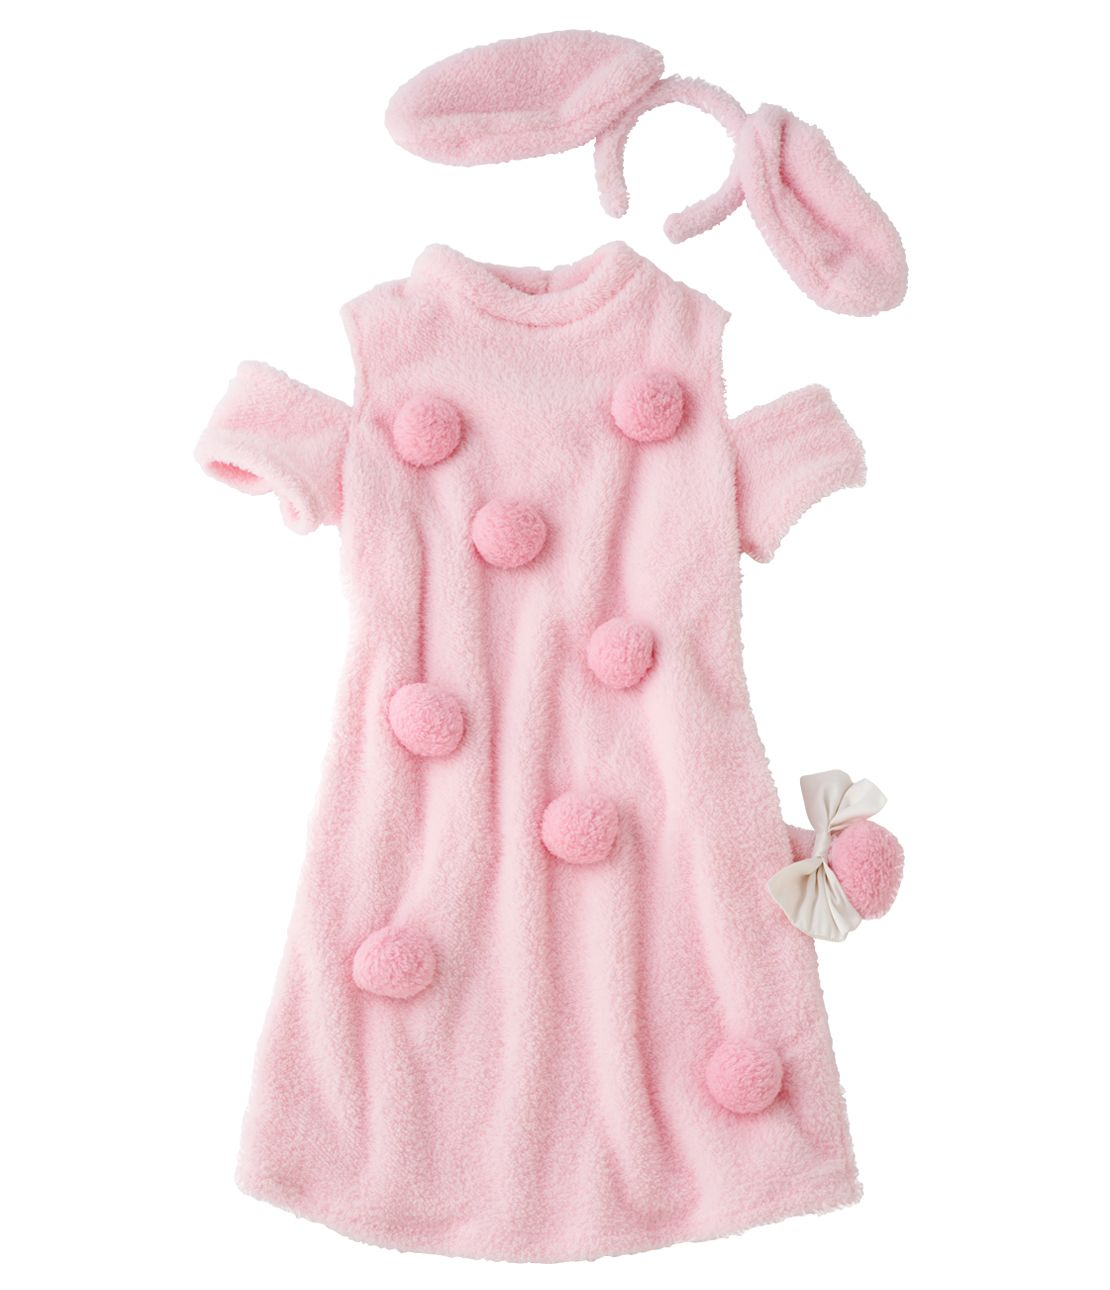 Happy Halloween poodle mini dress set